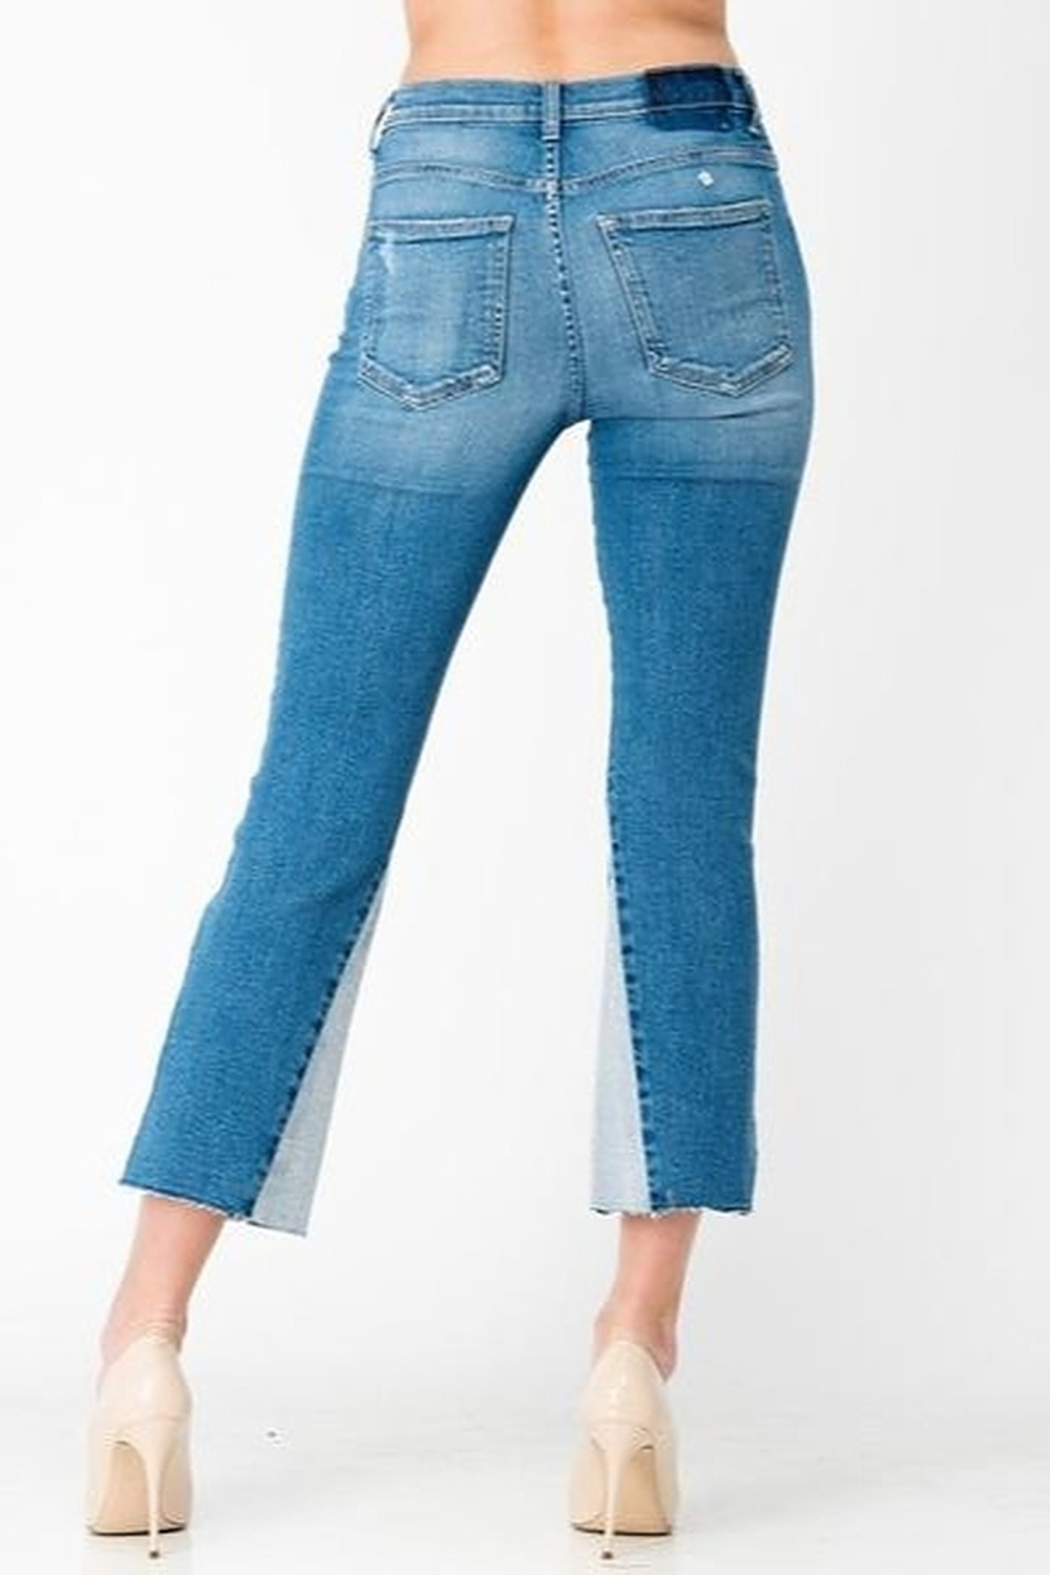 Sneak Peek Cropped Flare Two Toned Jeans - Side Cropped Image